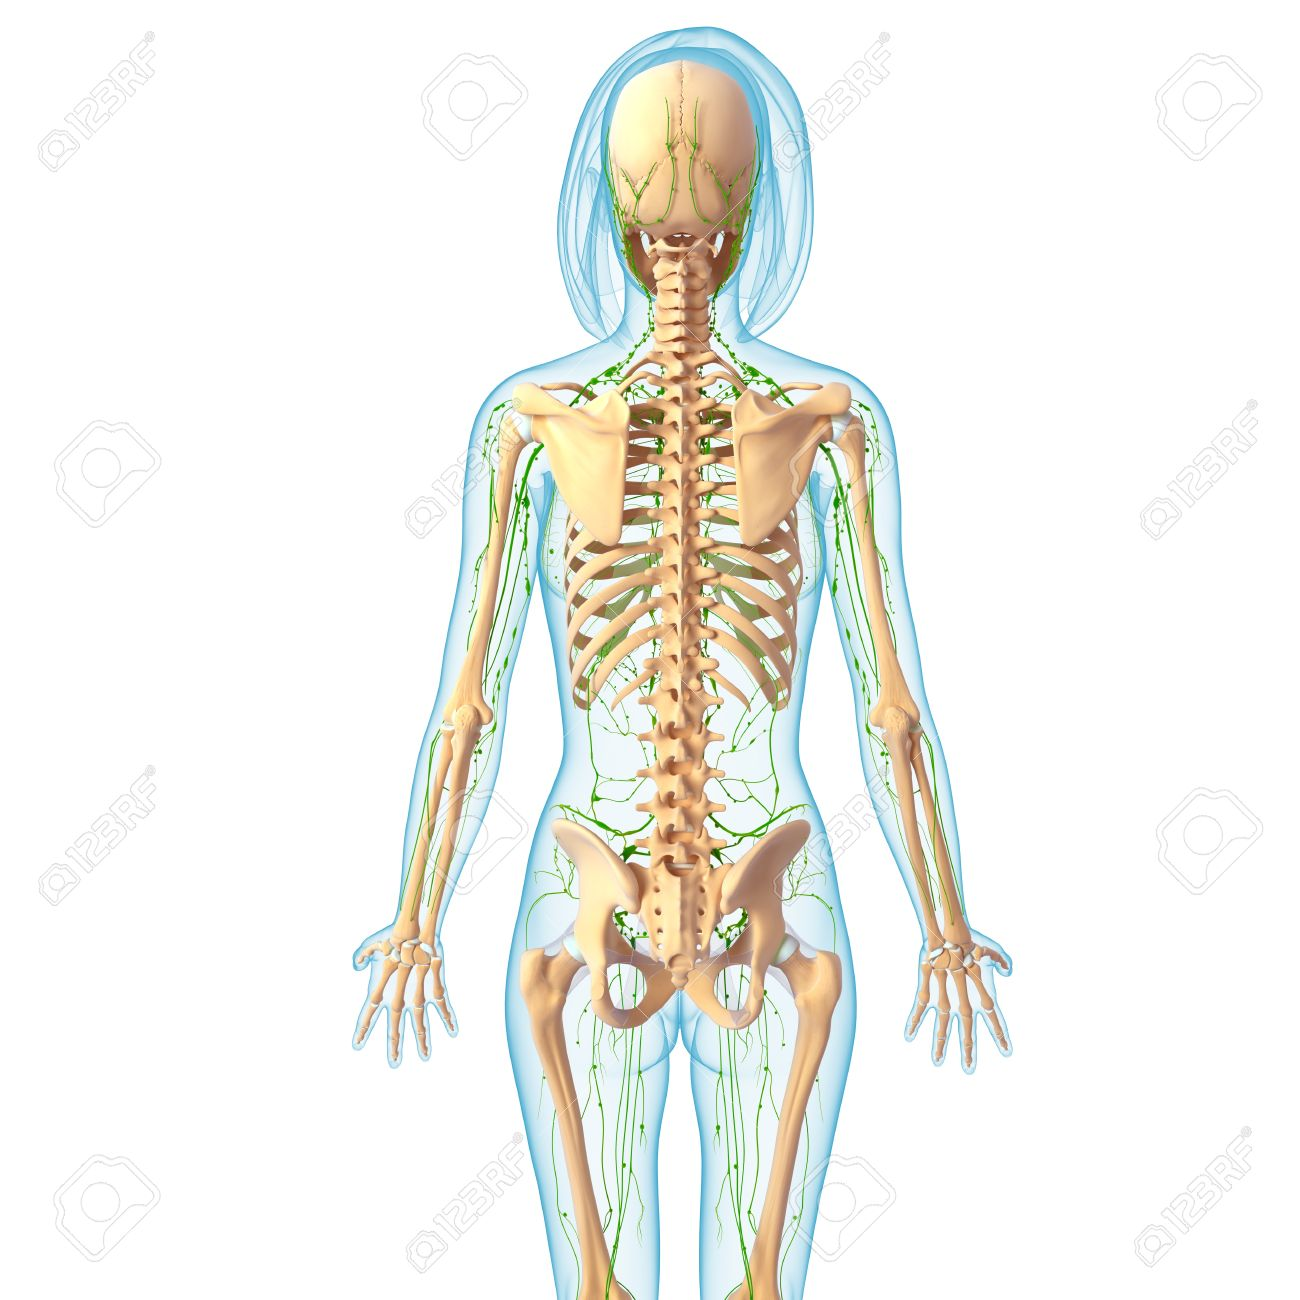 3d Art Illustration Of Lymphatic System Of Female Back Stock Photo ...